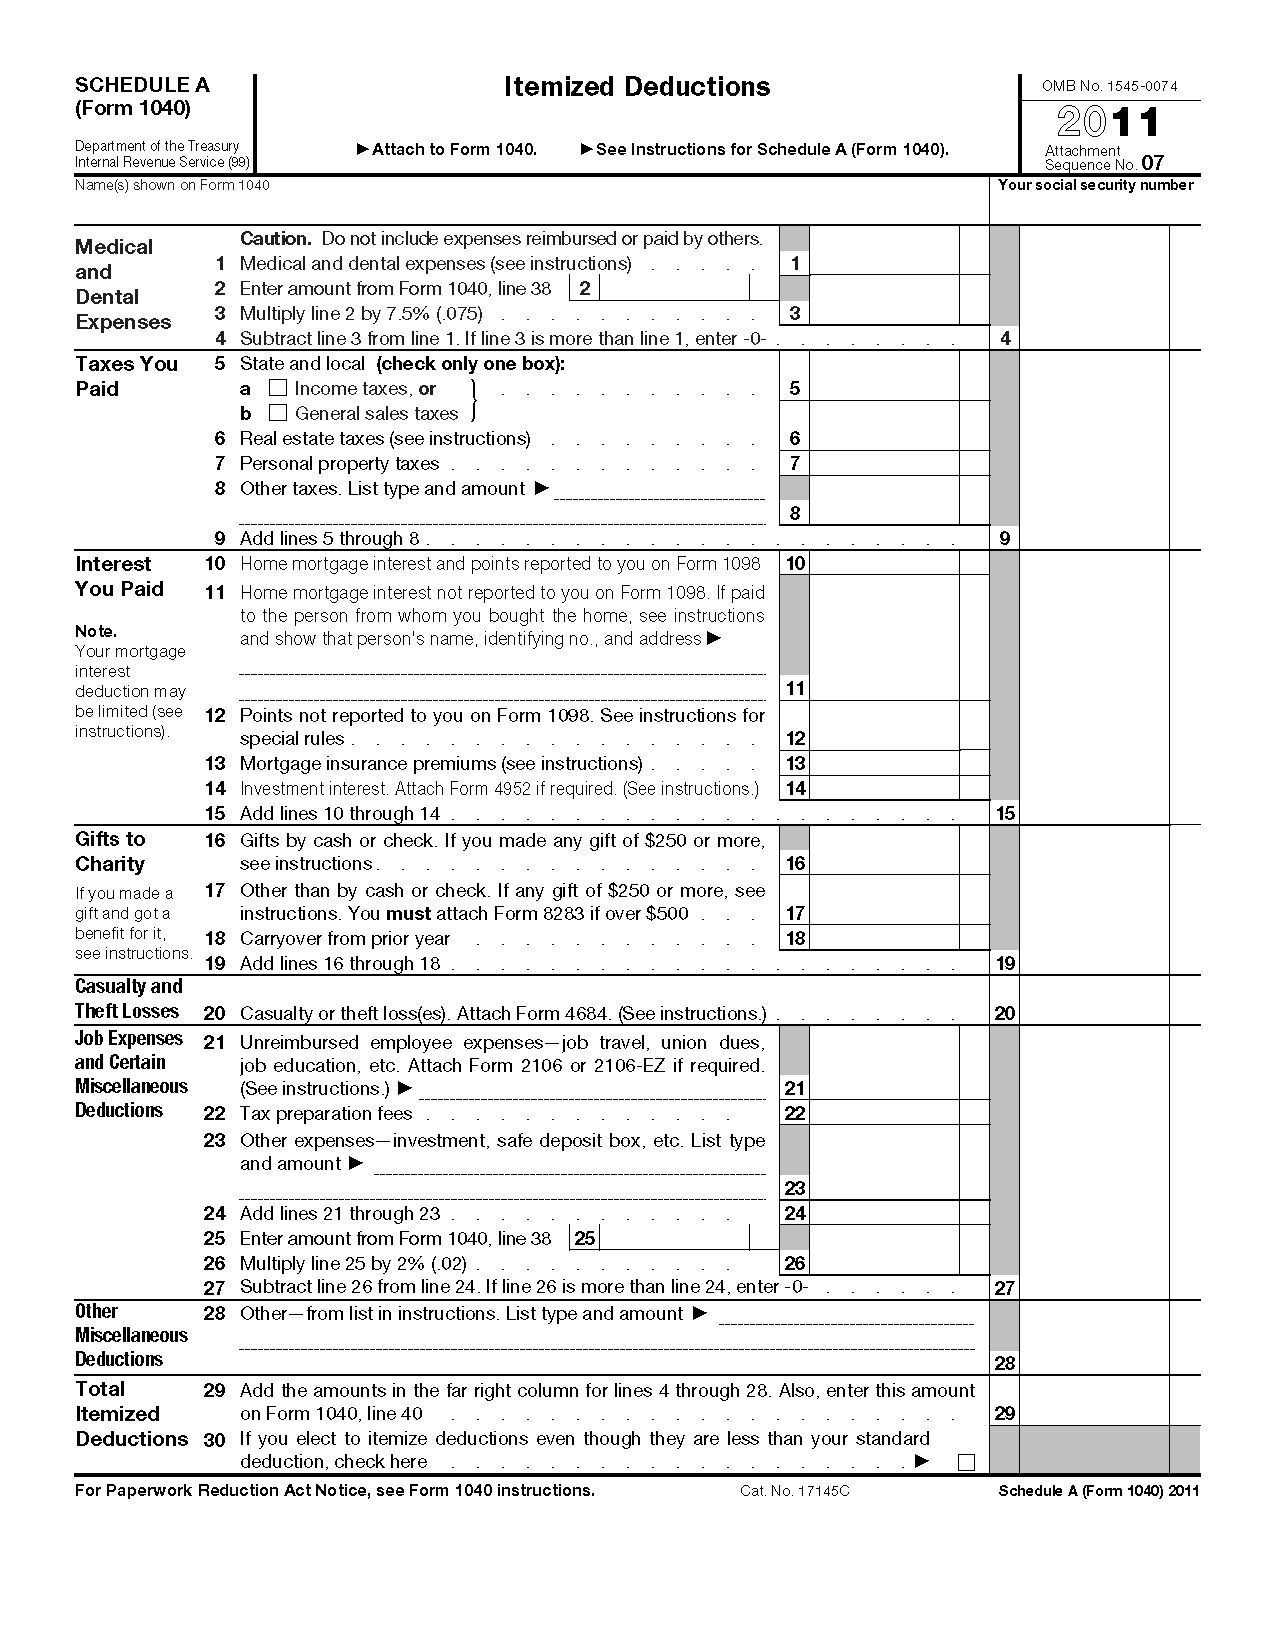 Itemized Deductions Worksheet